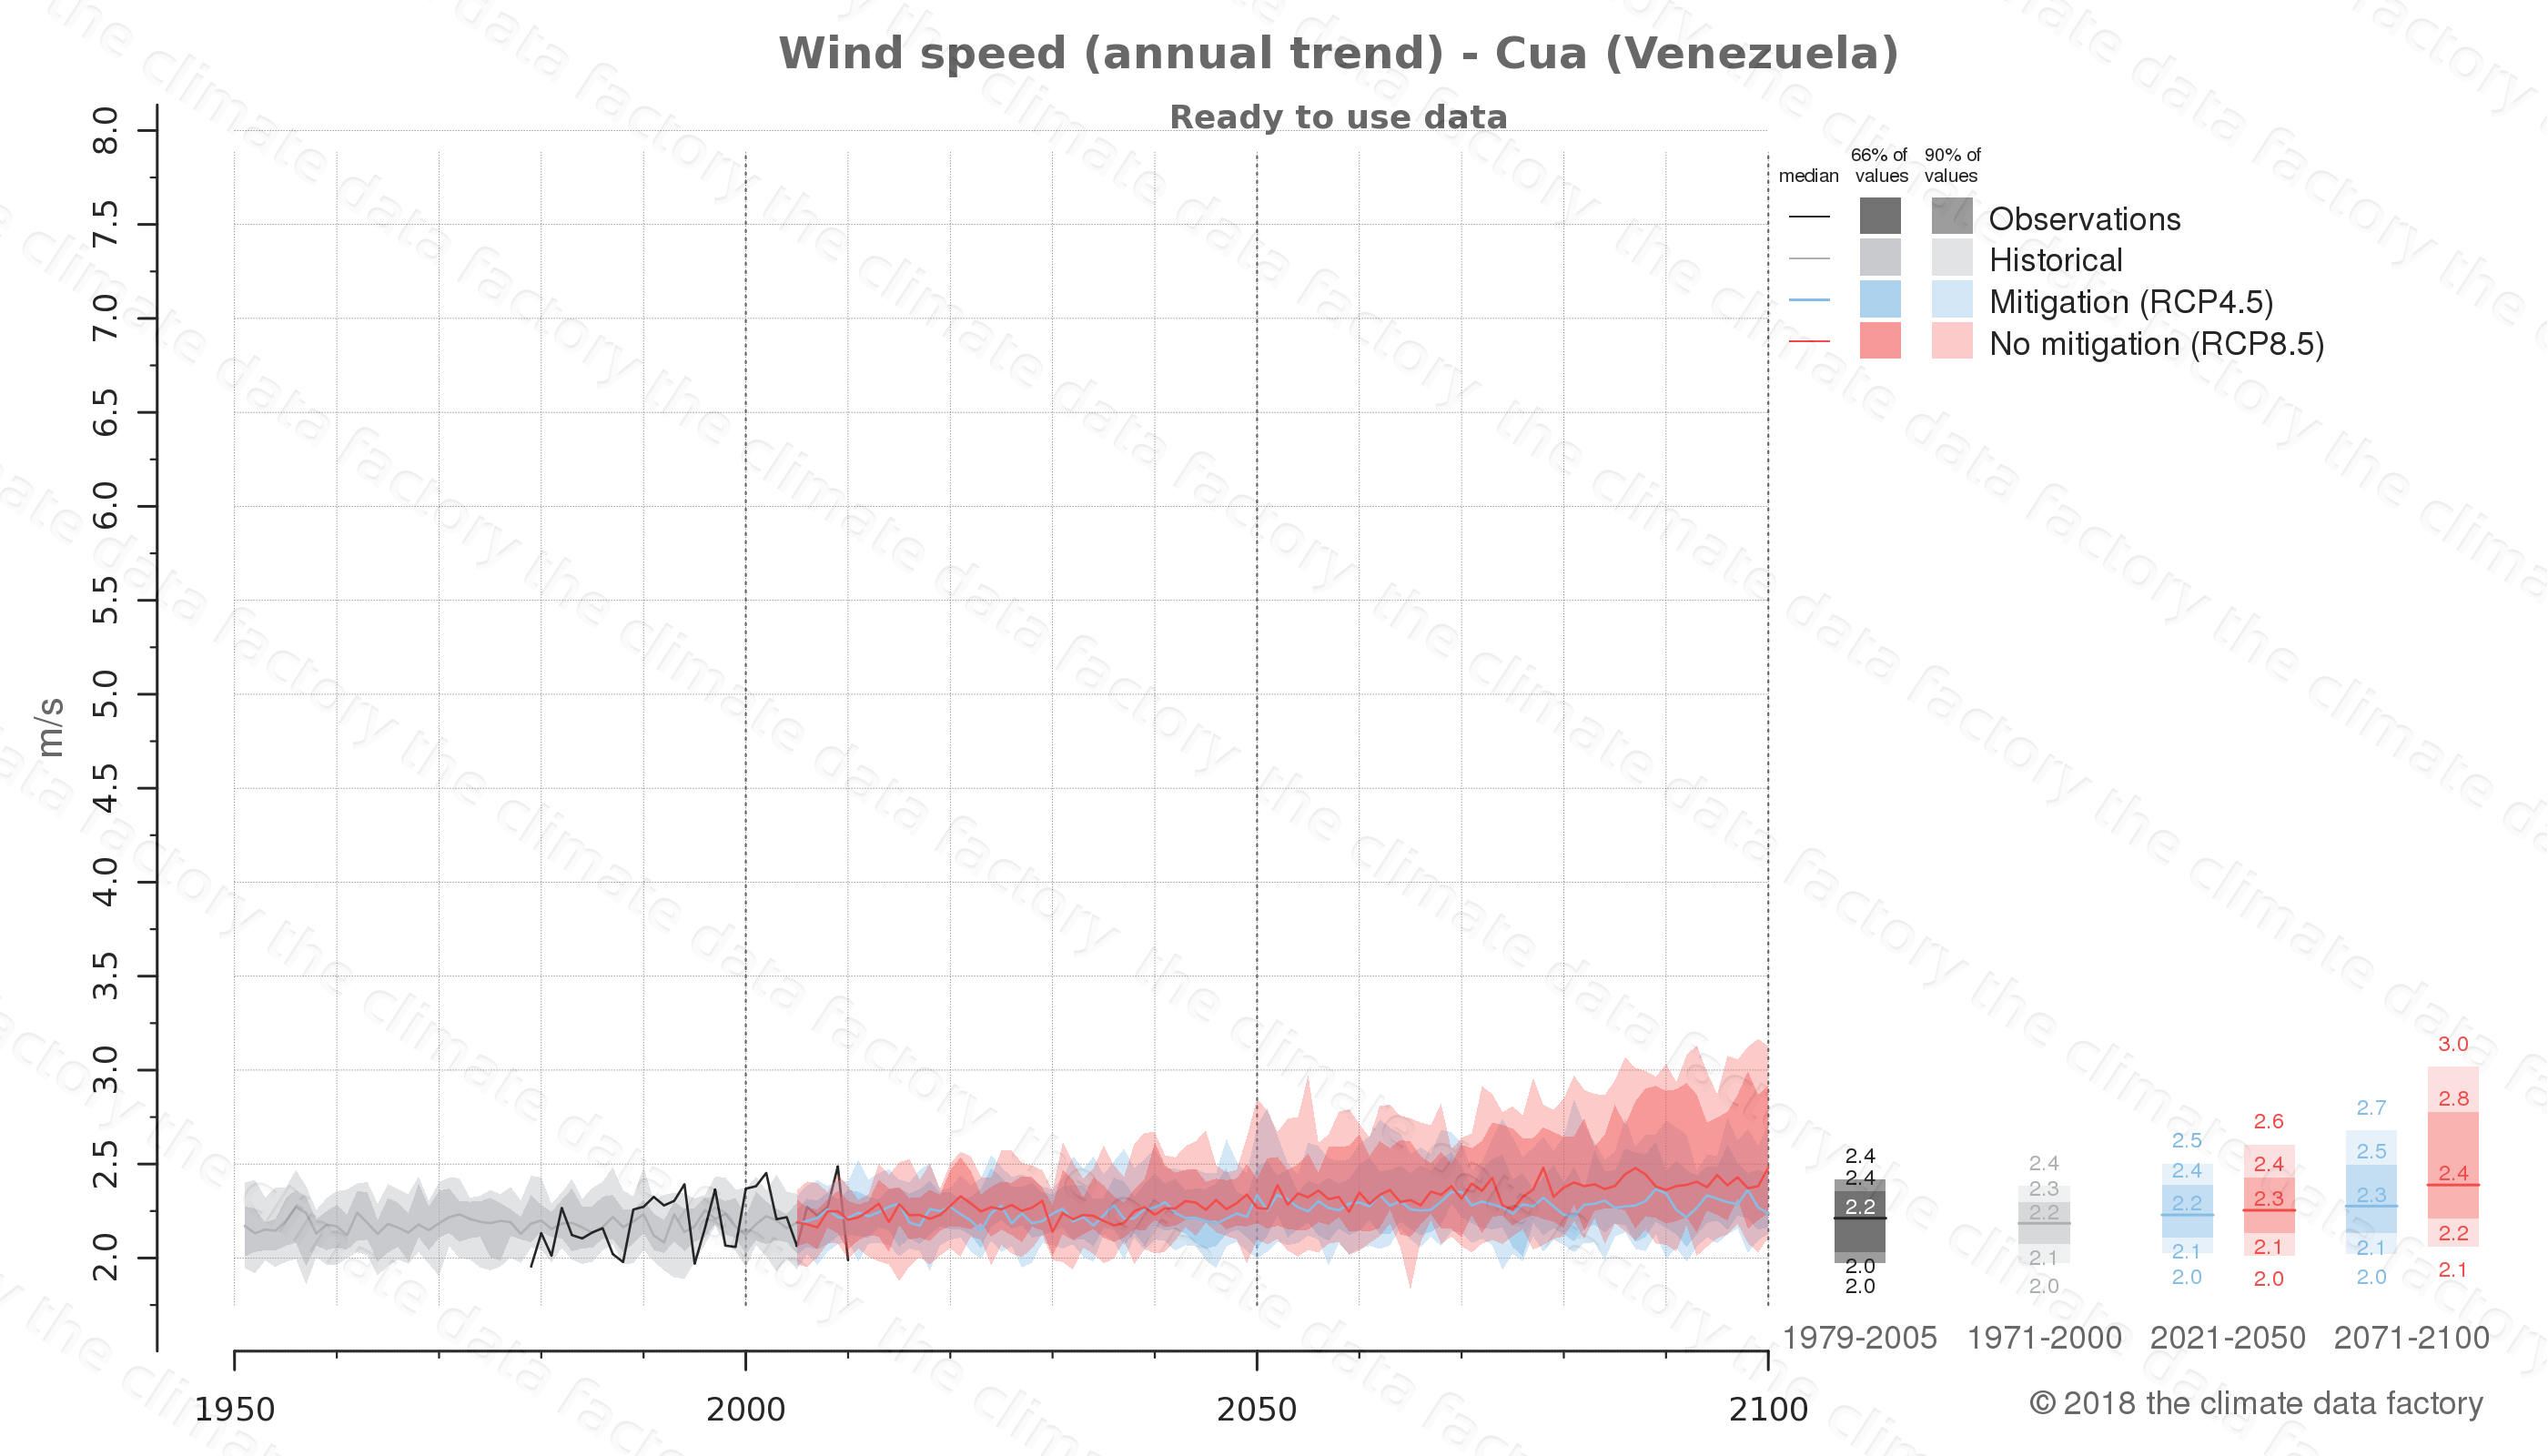 climate change data policy adaptation climate graph city data wind-speed cua venezuela